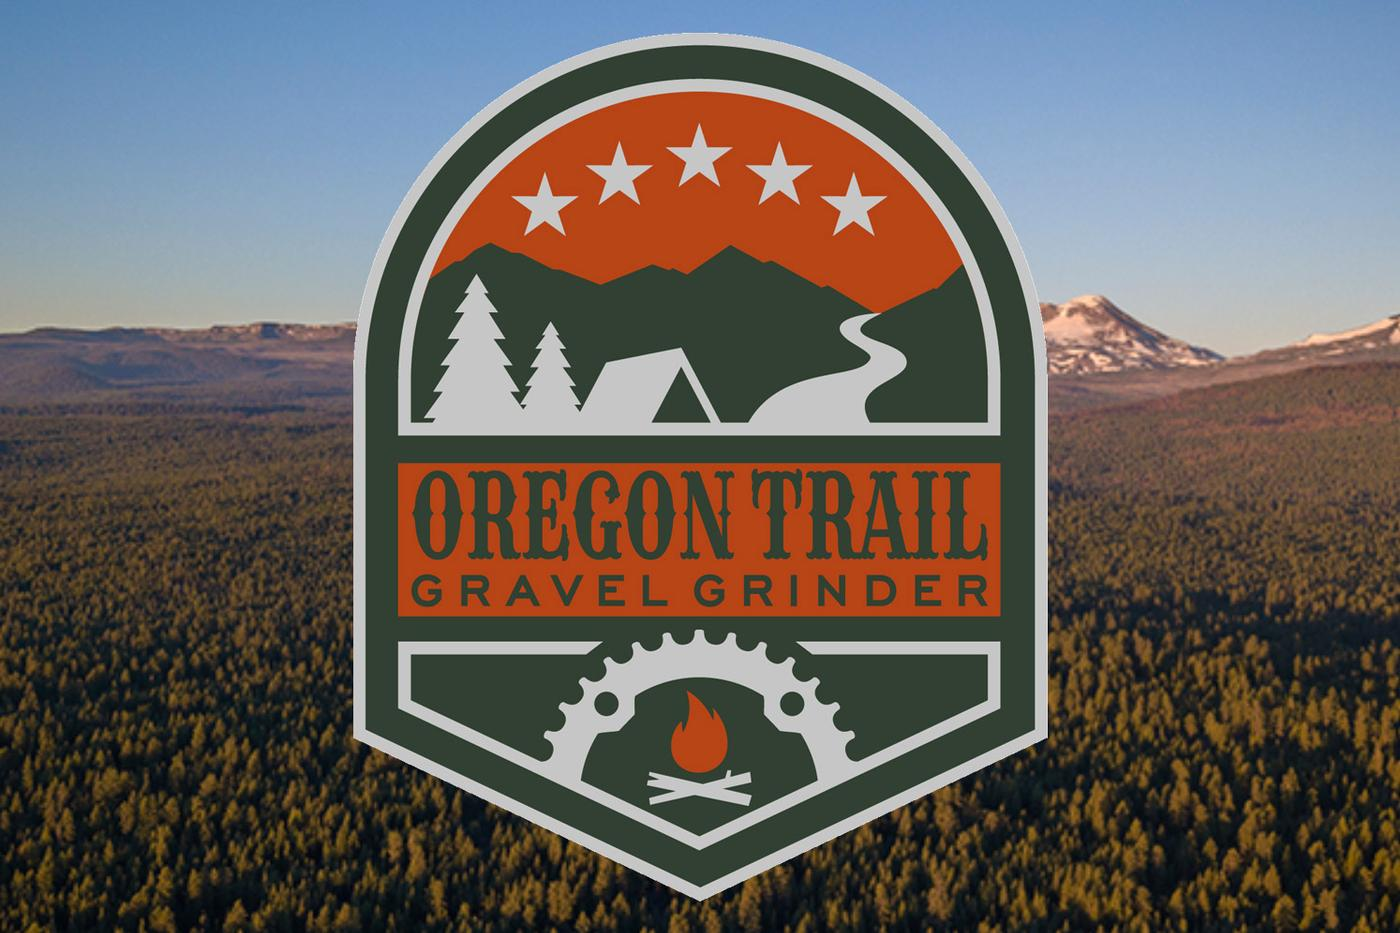 Are You Going to the Oregon Trail Gravel Grinder?